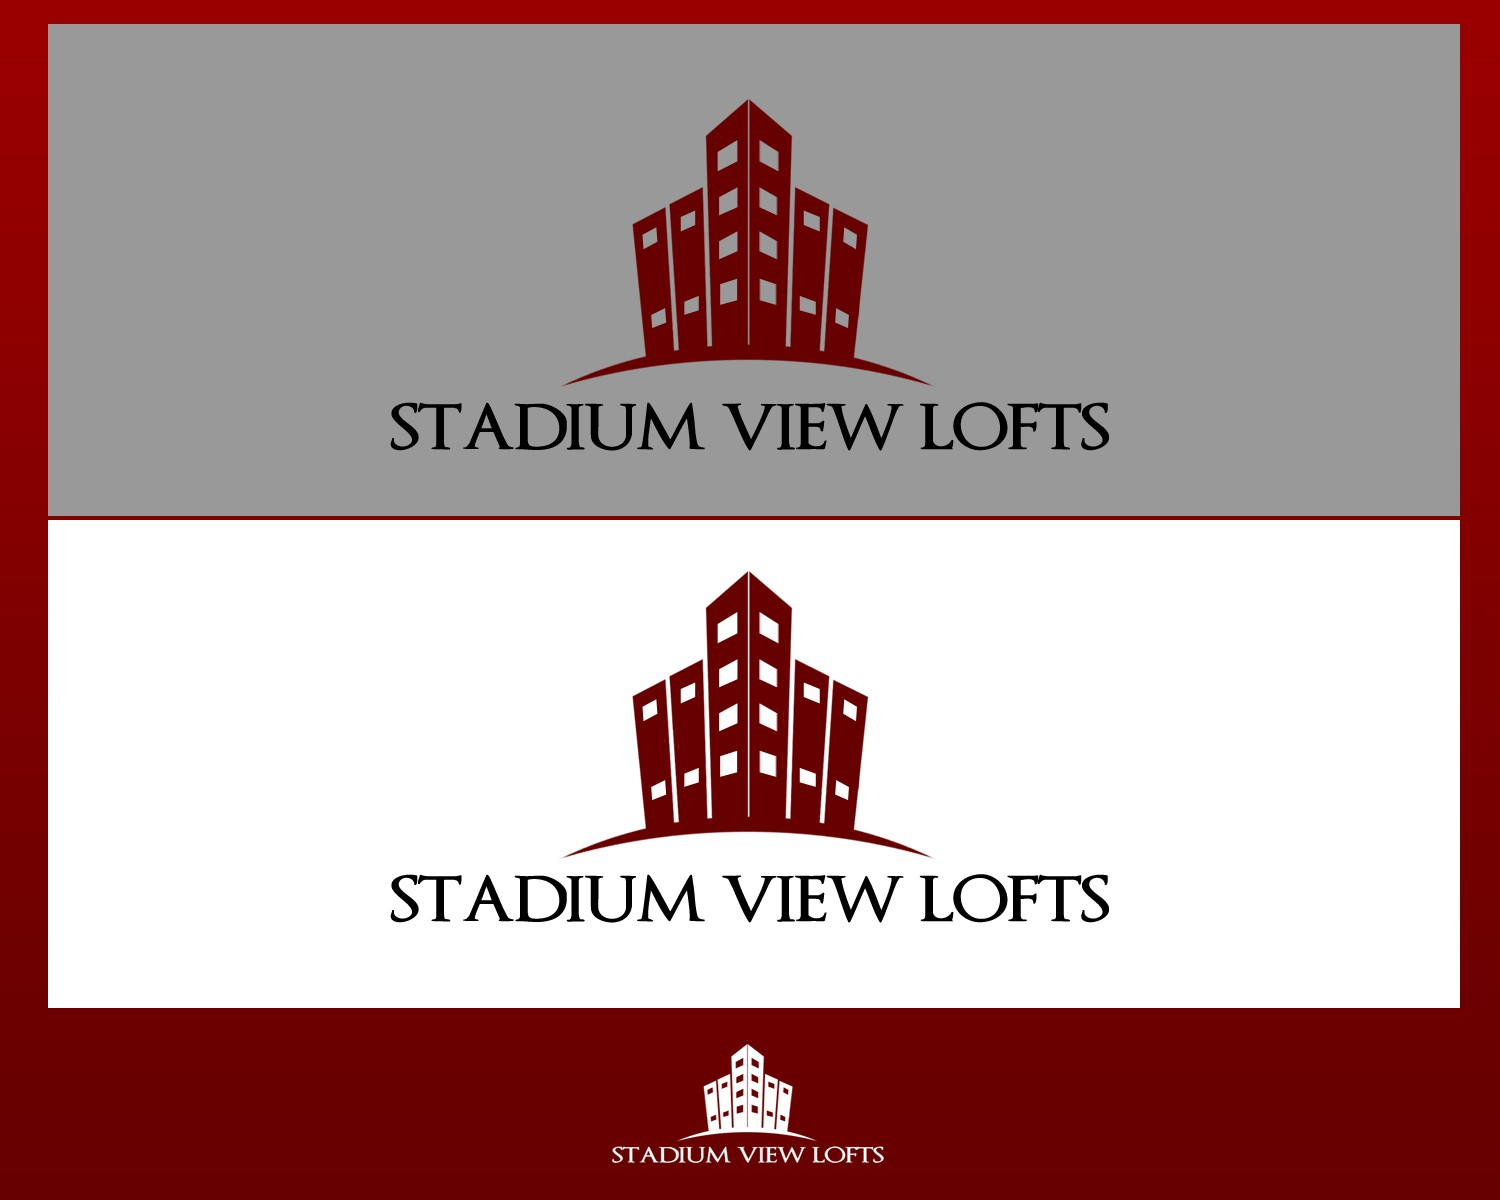 Help Stadium View Lofts with a new logo